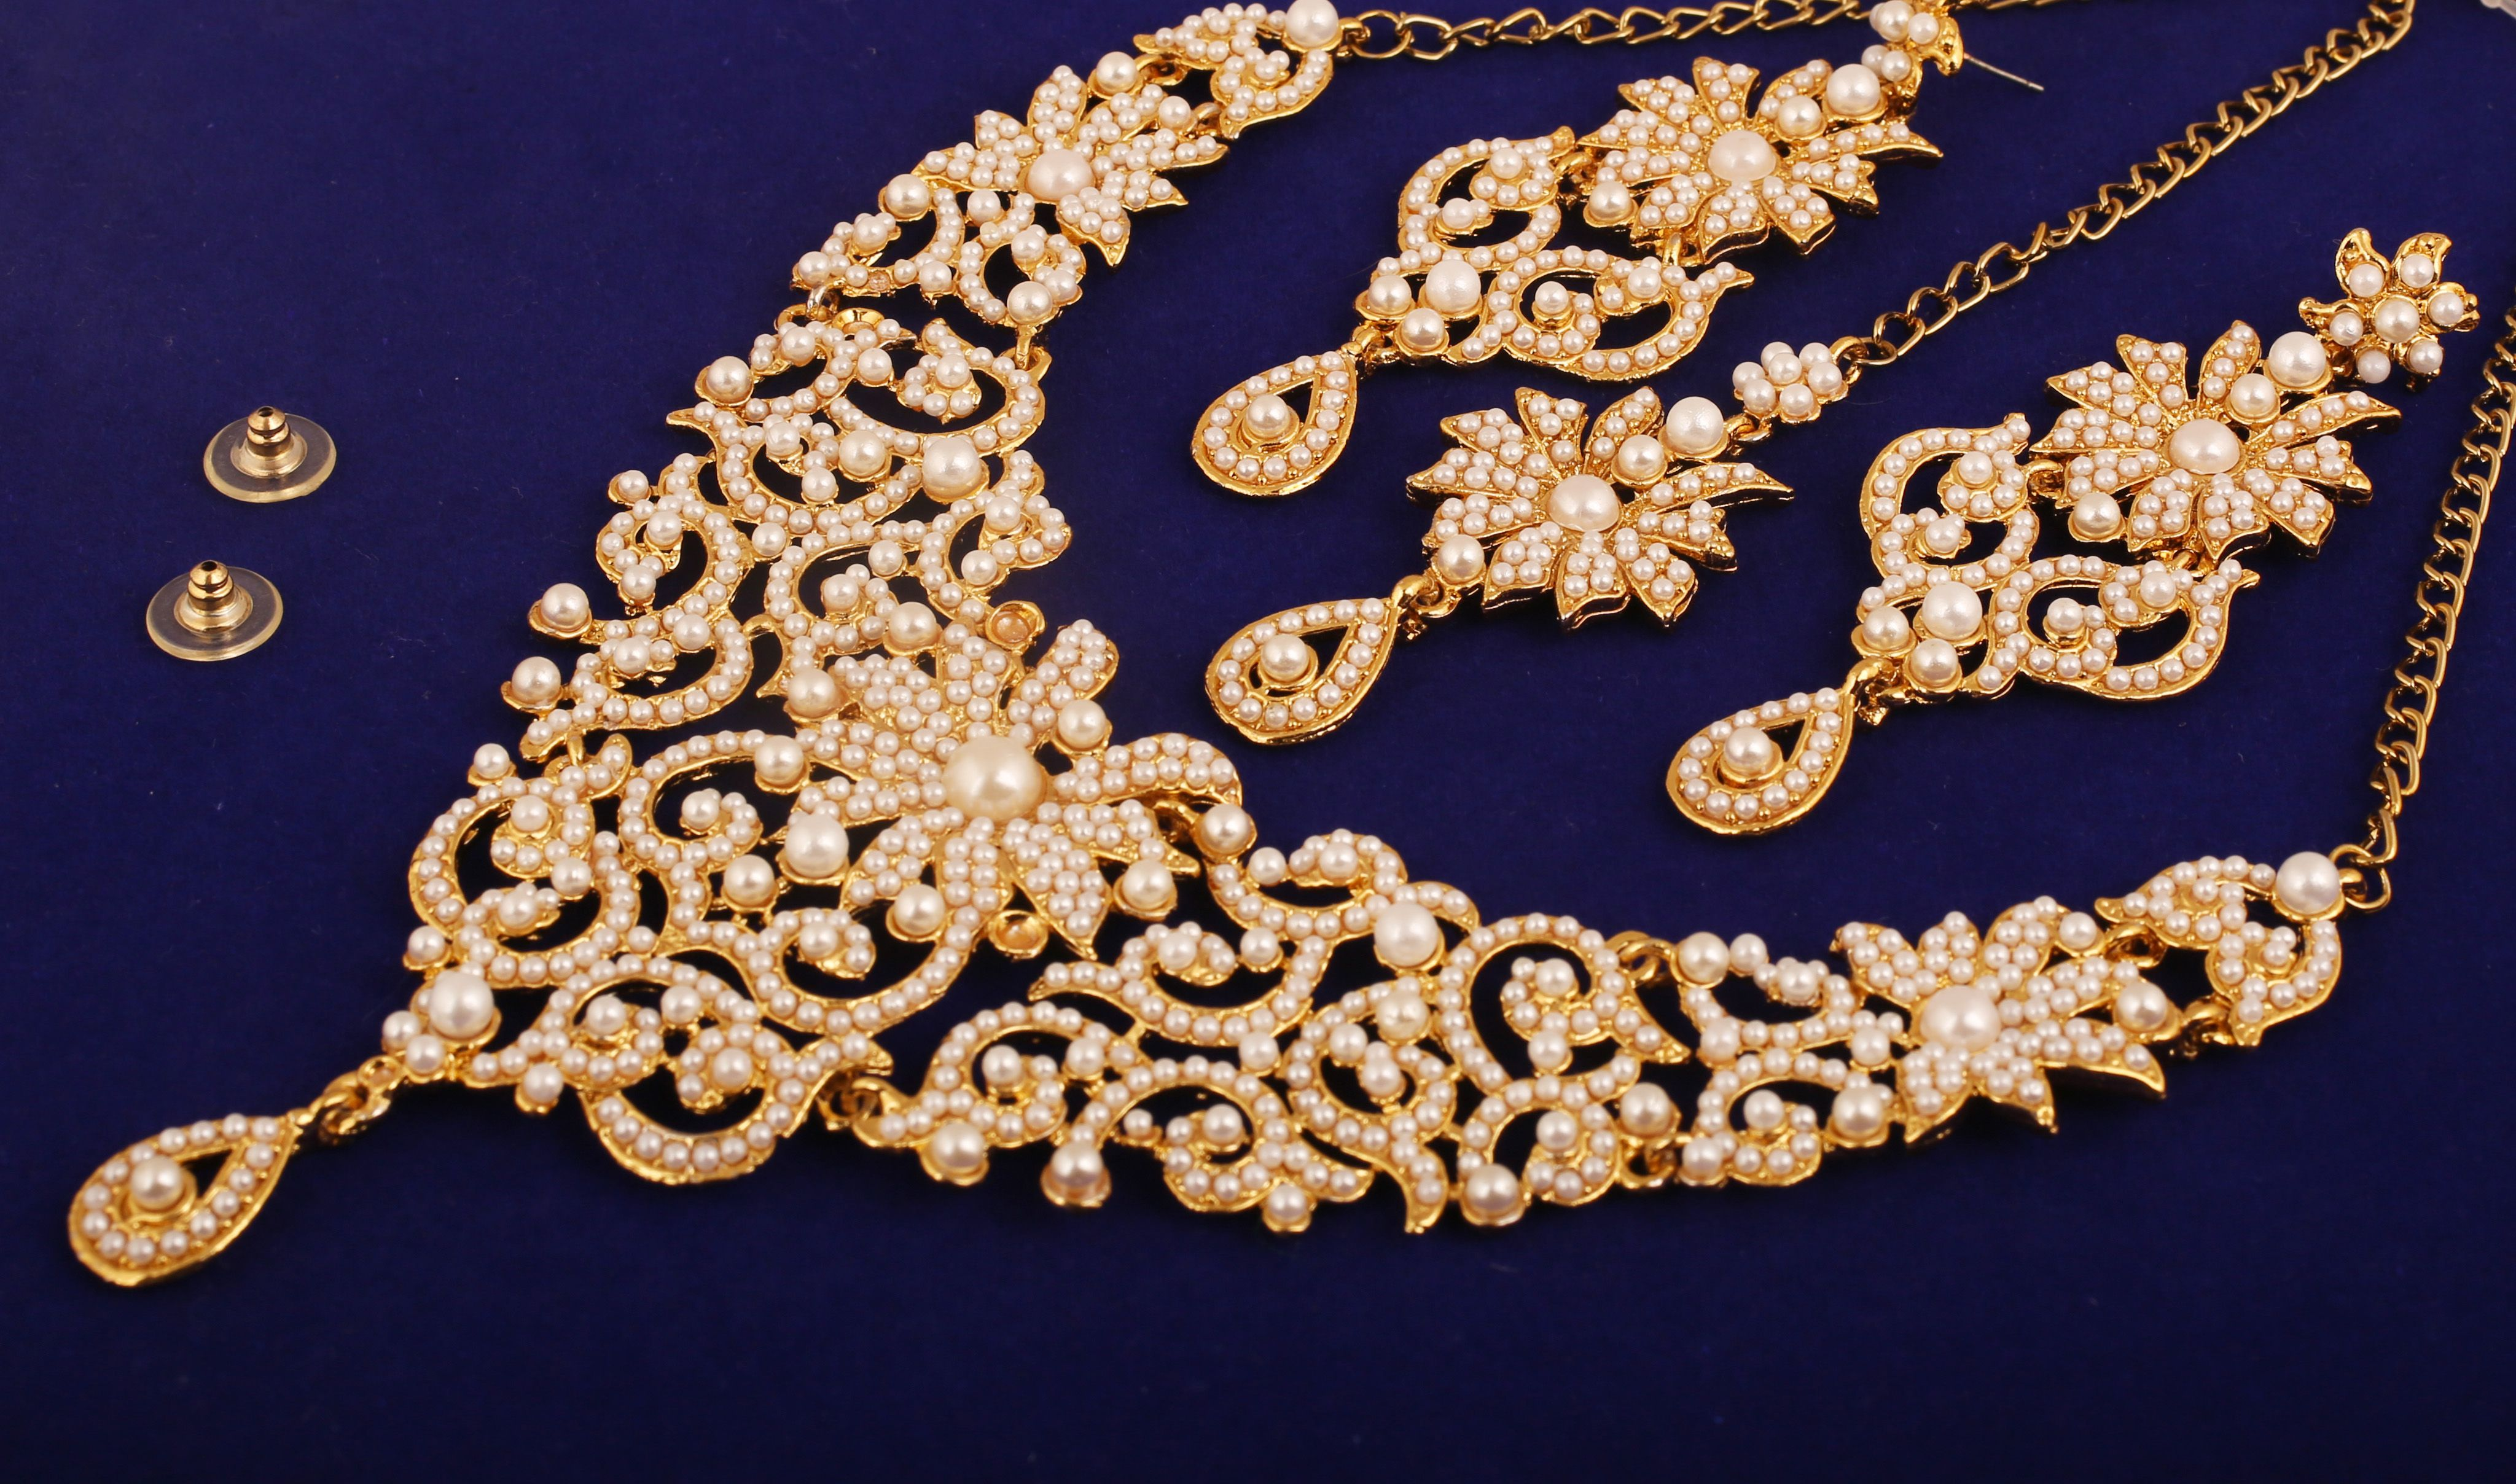 Touchstone Indian Bollywood Traditional Royal Look Fine Filigree Carving Faux Pearls Grand Bridal Designer Jewelry Necklace Set For Women In Antique Gold Tone Buy Global Trade Rus